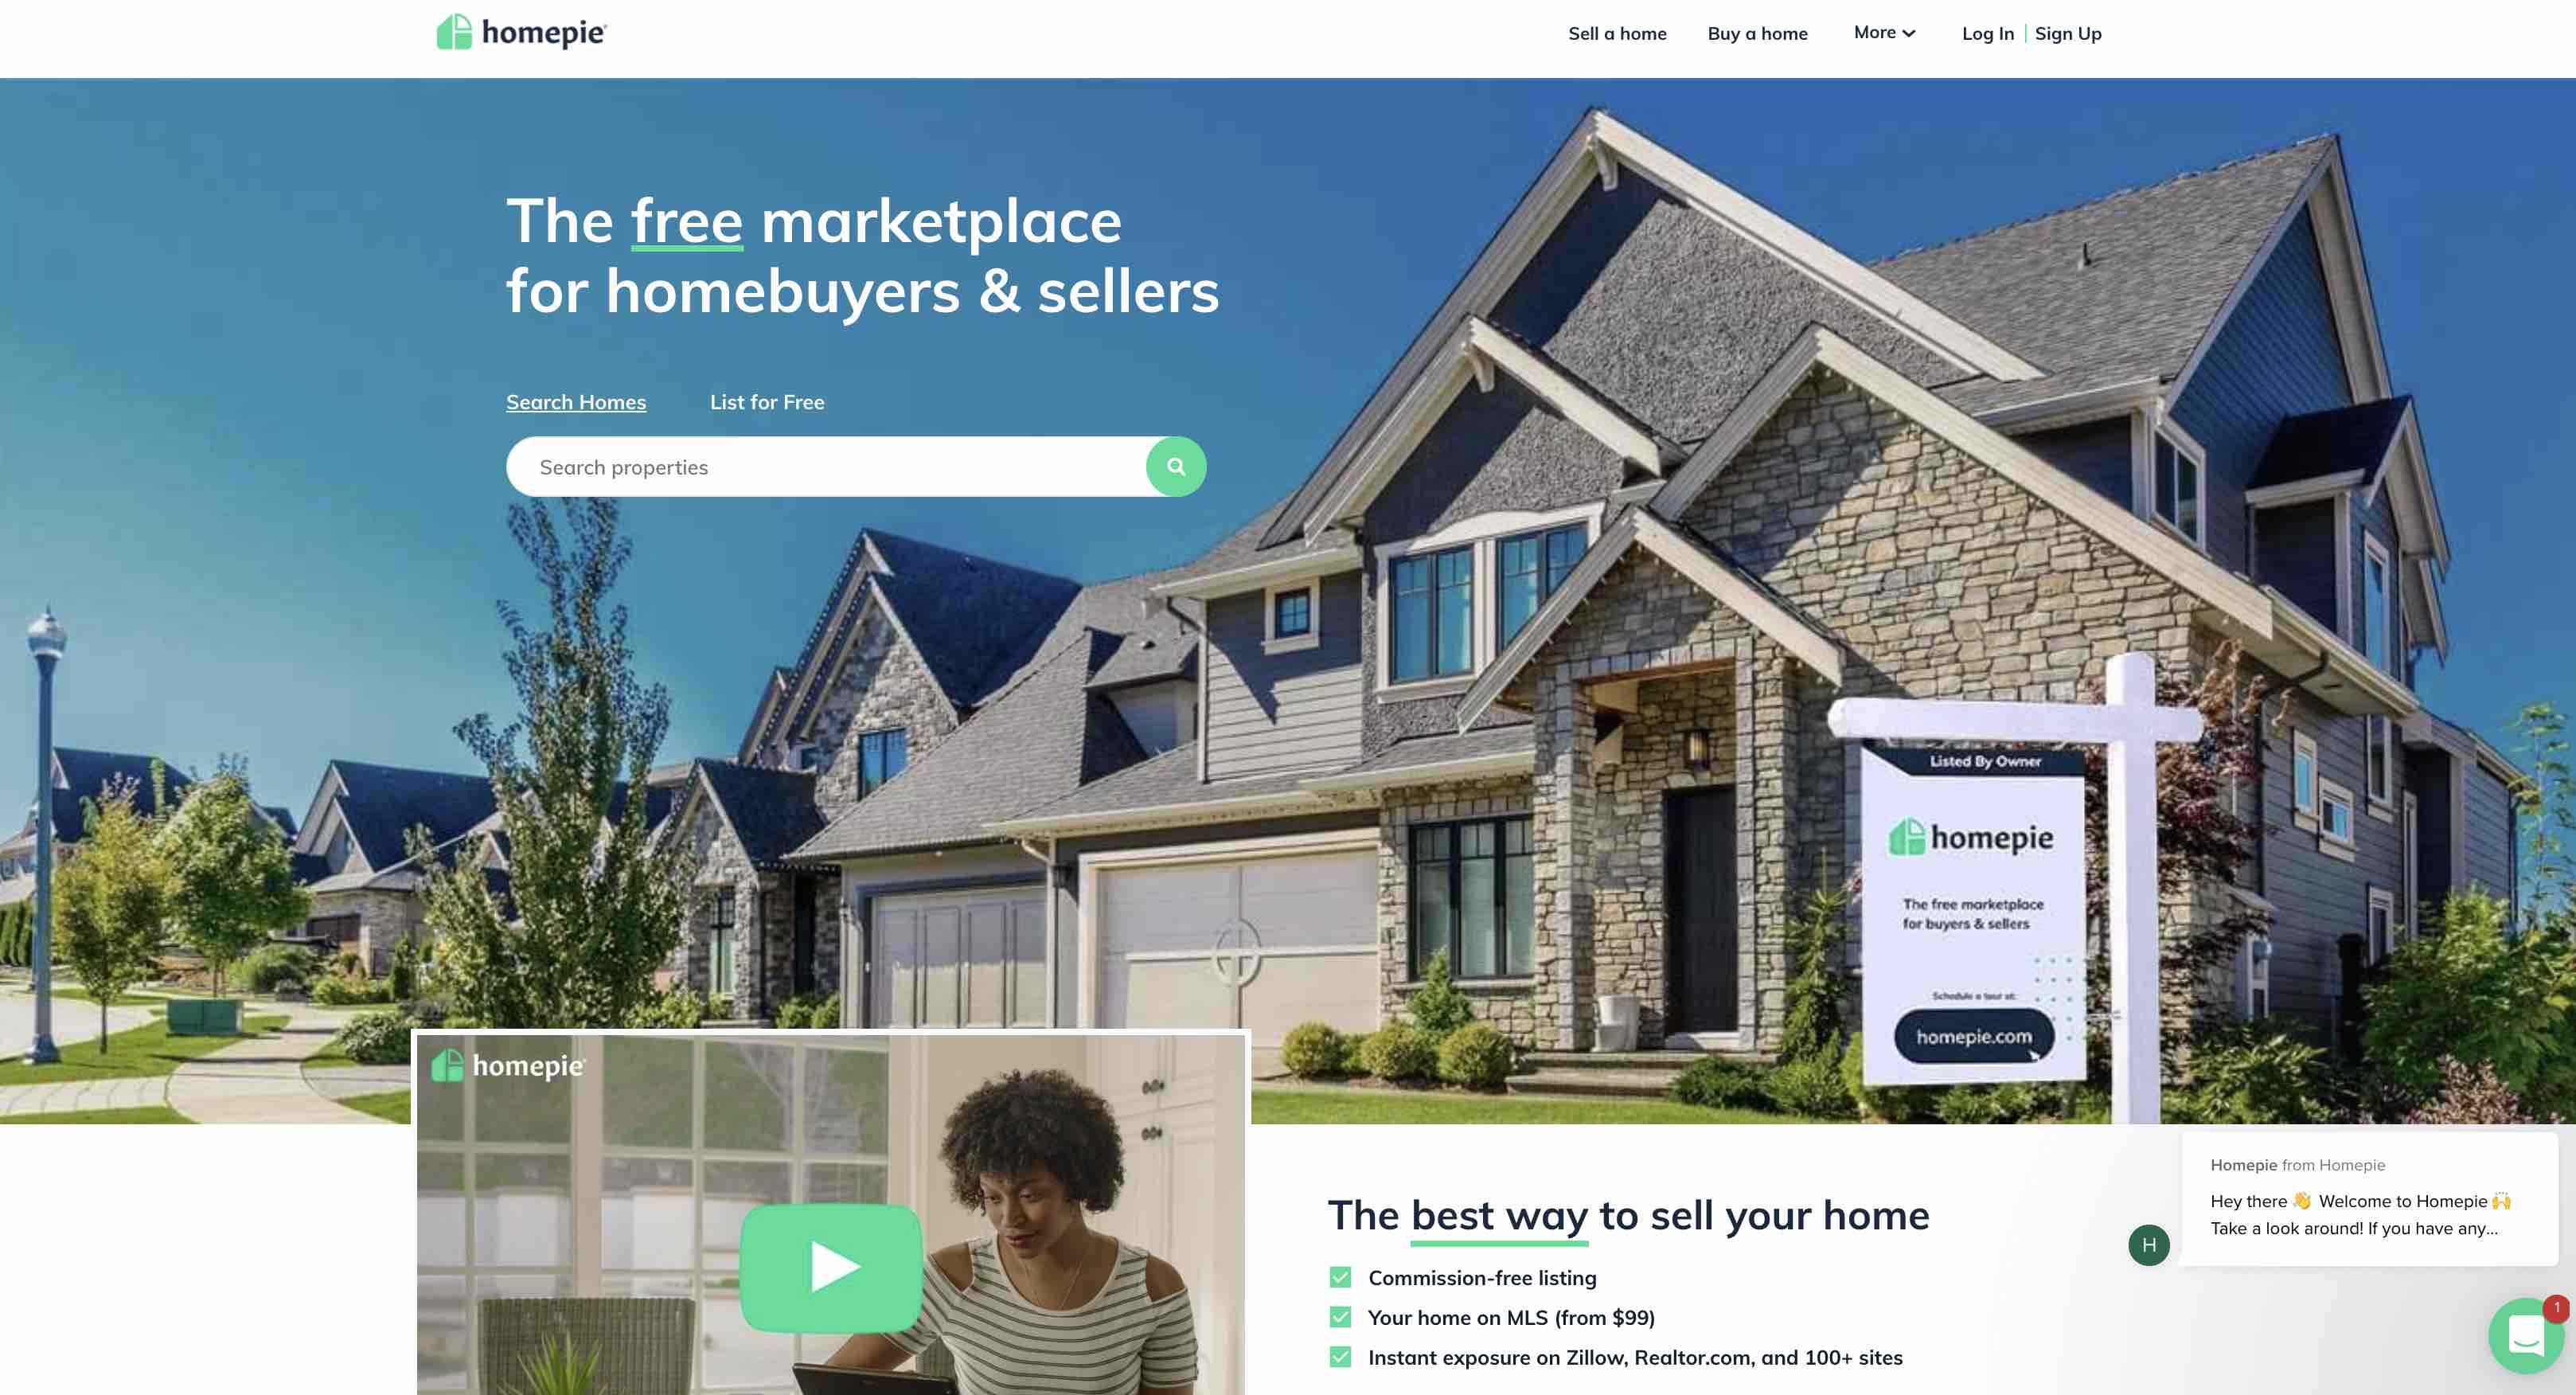 Homepie, Inc., is a leading provider of do-it-yourself tools for home buyers and sellers. Learn more at homepie.com.